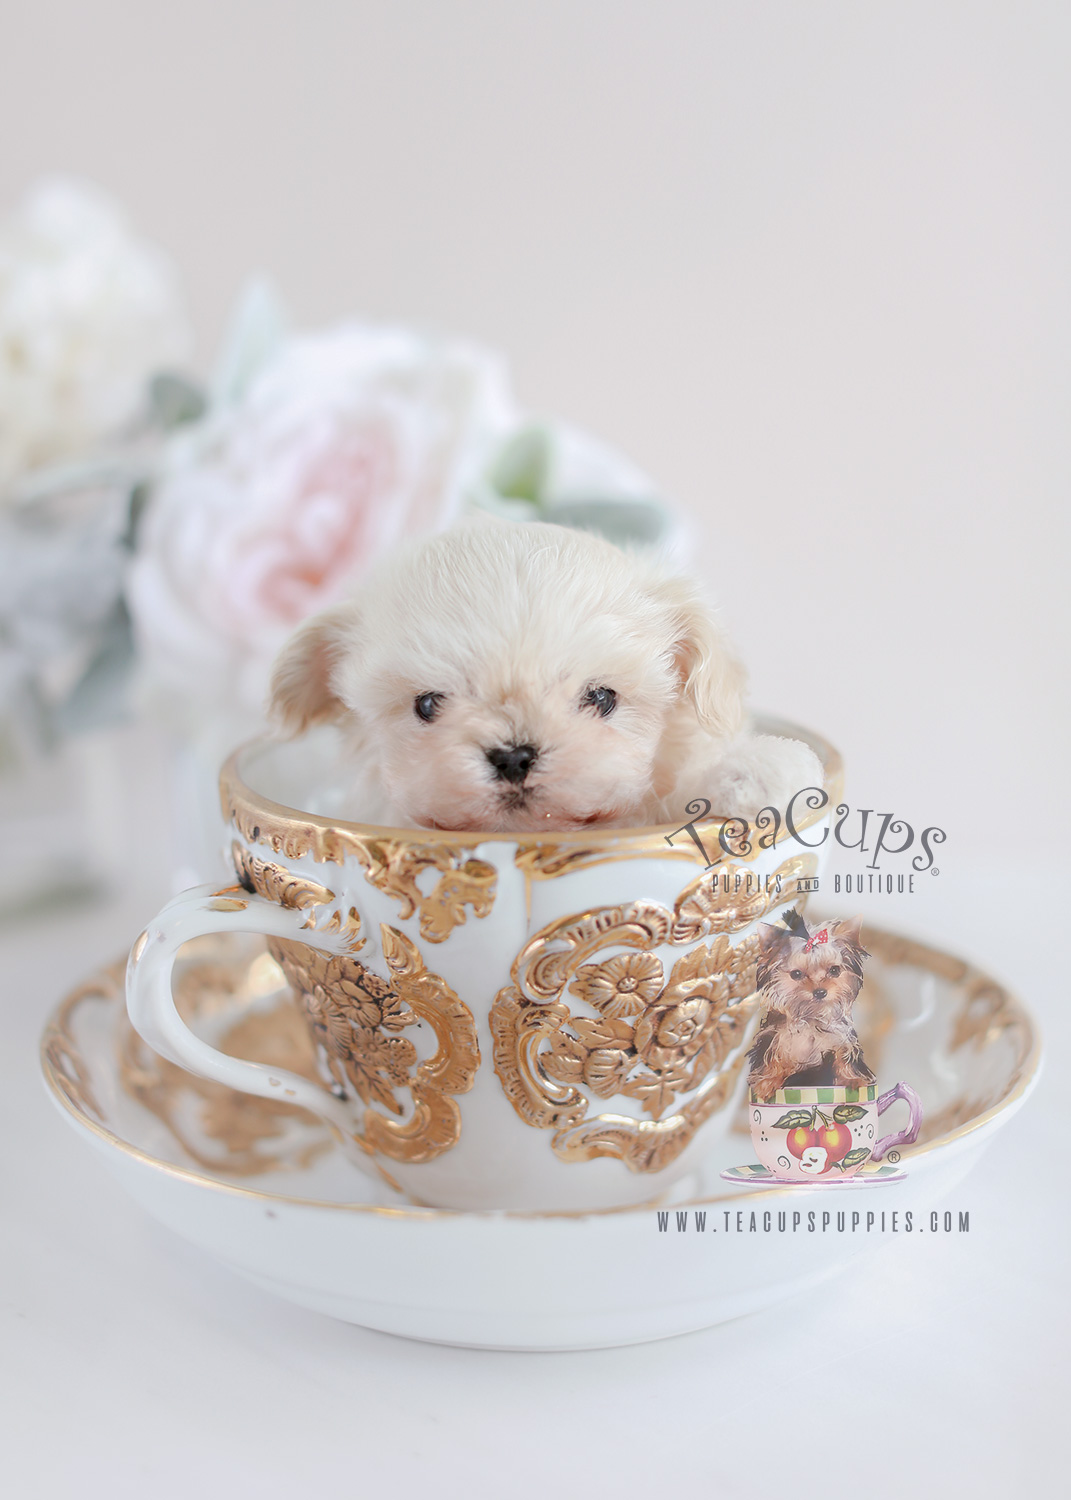 Black Maltese Poodle Designer Breed Puppies Teacups